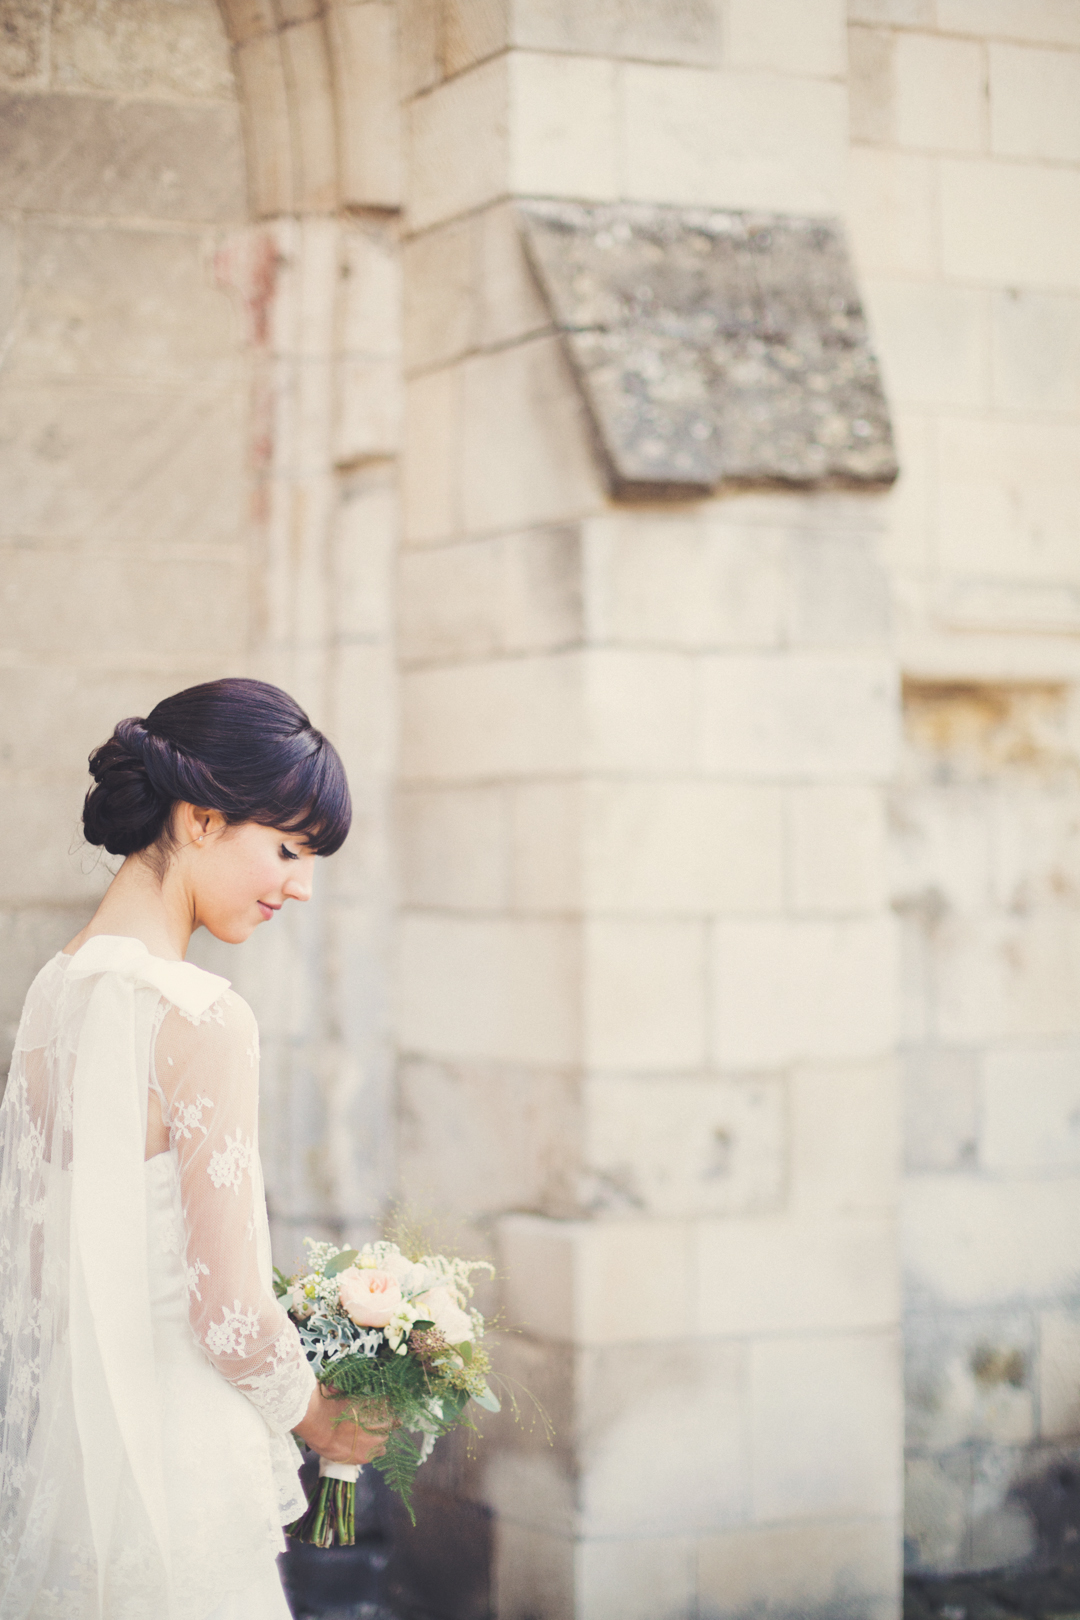 Northern California Wedding Photographer @ Anne-Claire Brun 0103